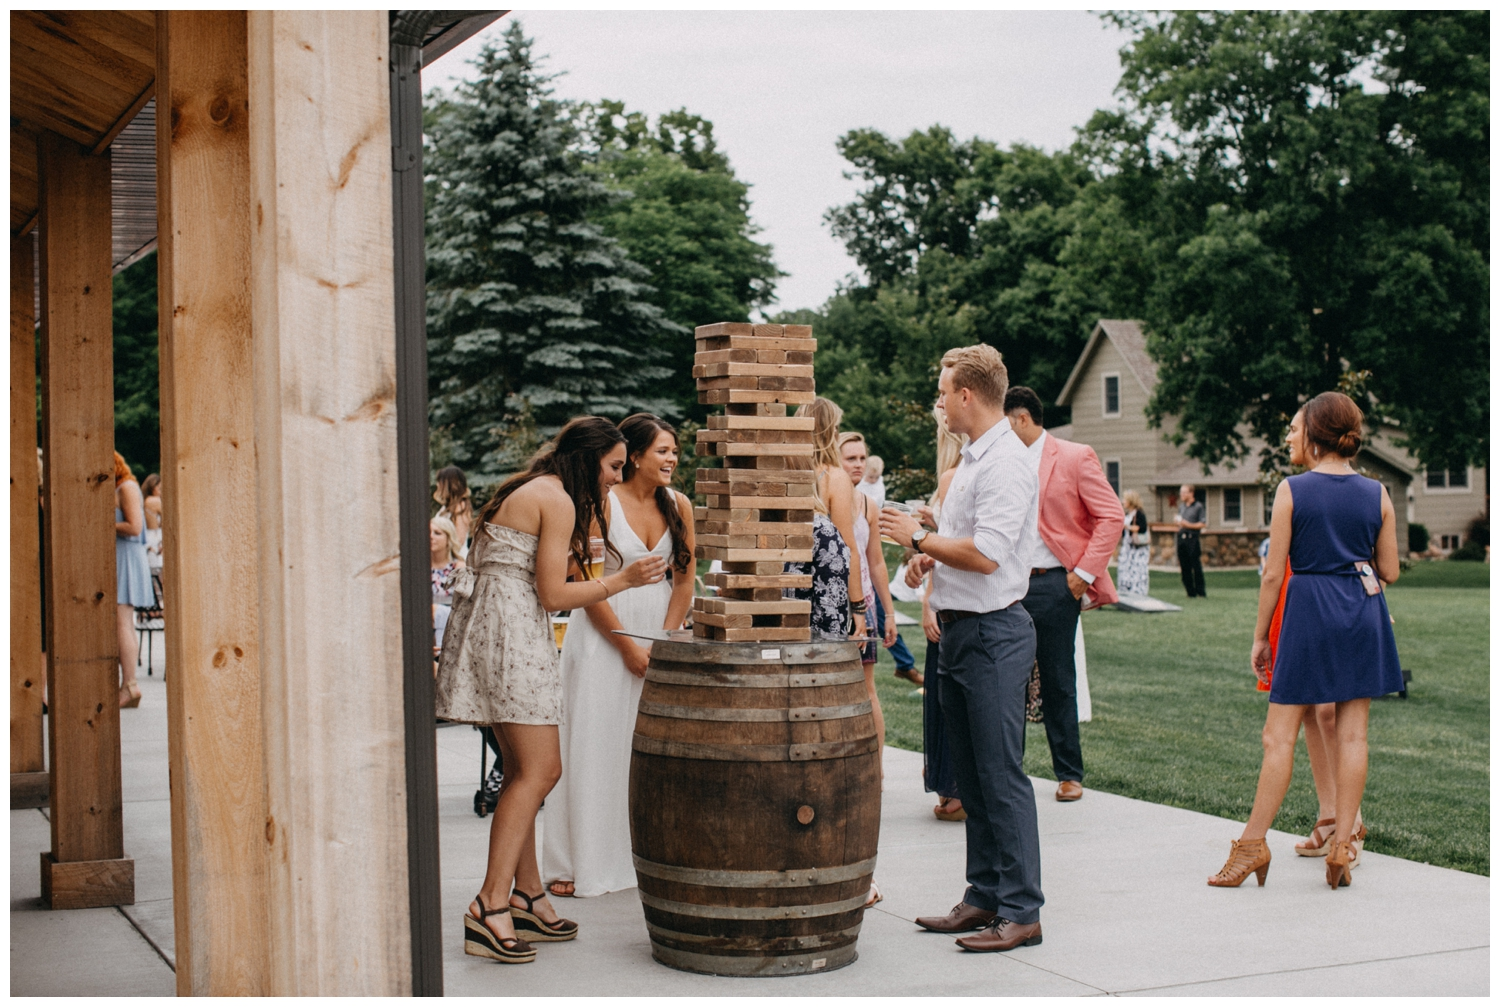 Jumbo JENGA game at Creekside Farm wedding reception